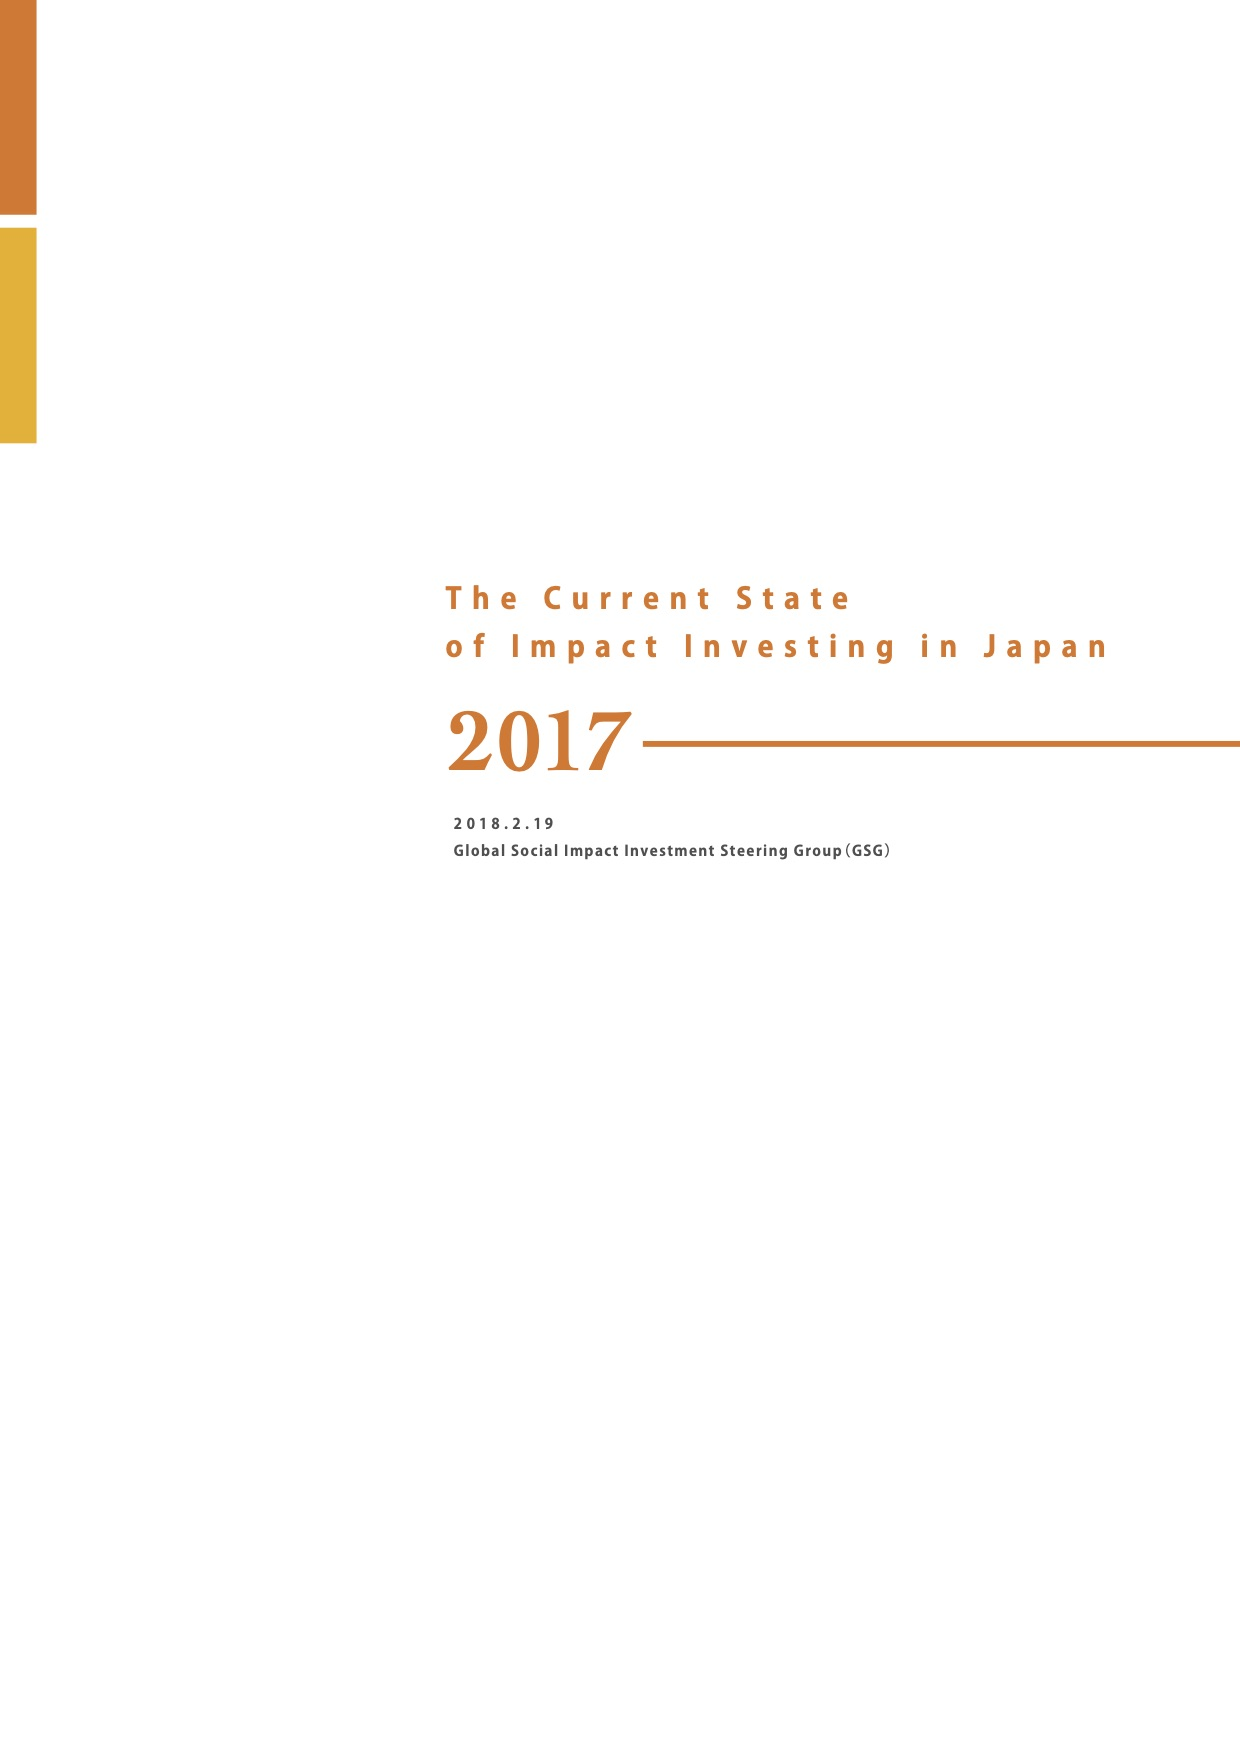 The Current State of Social Impact Investment in Japan 2017